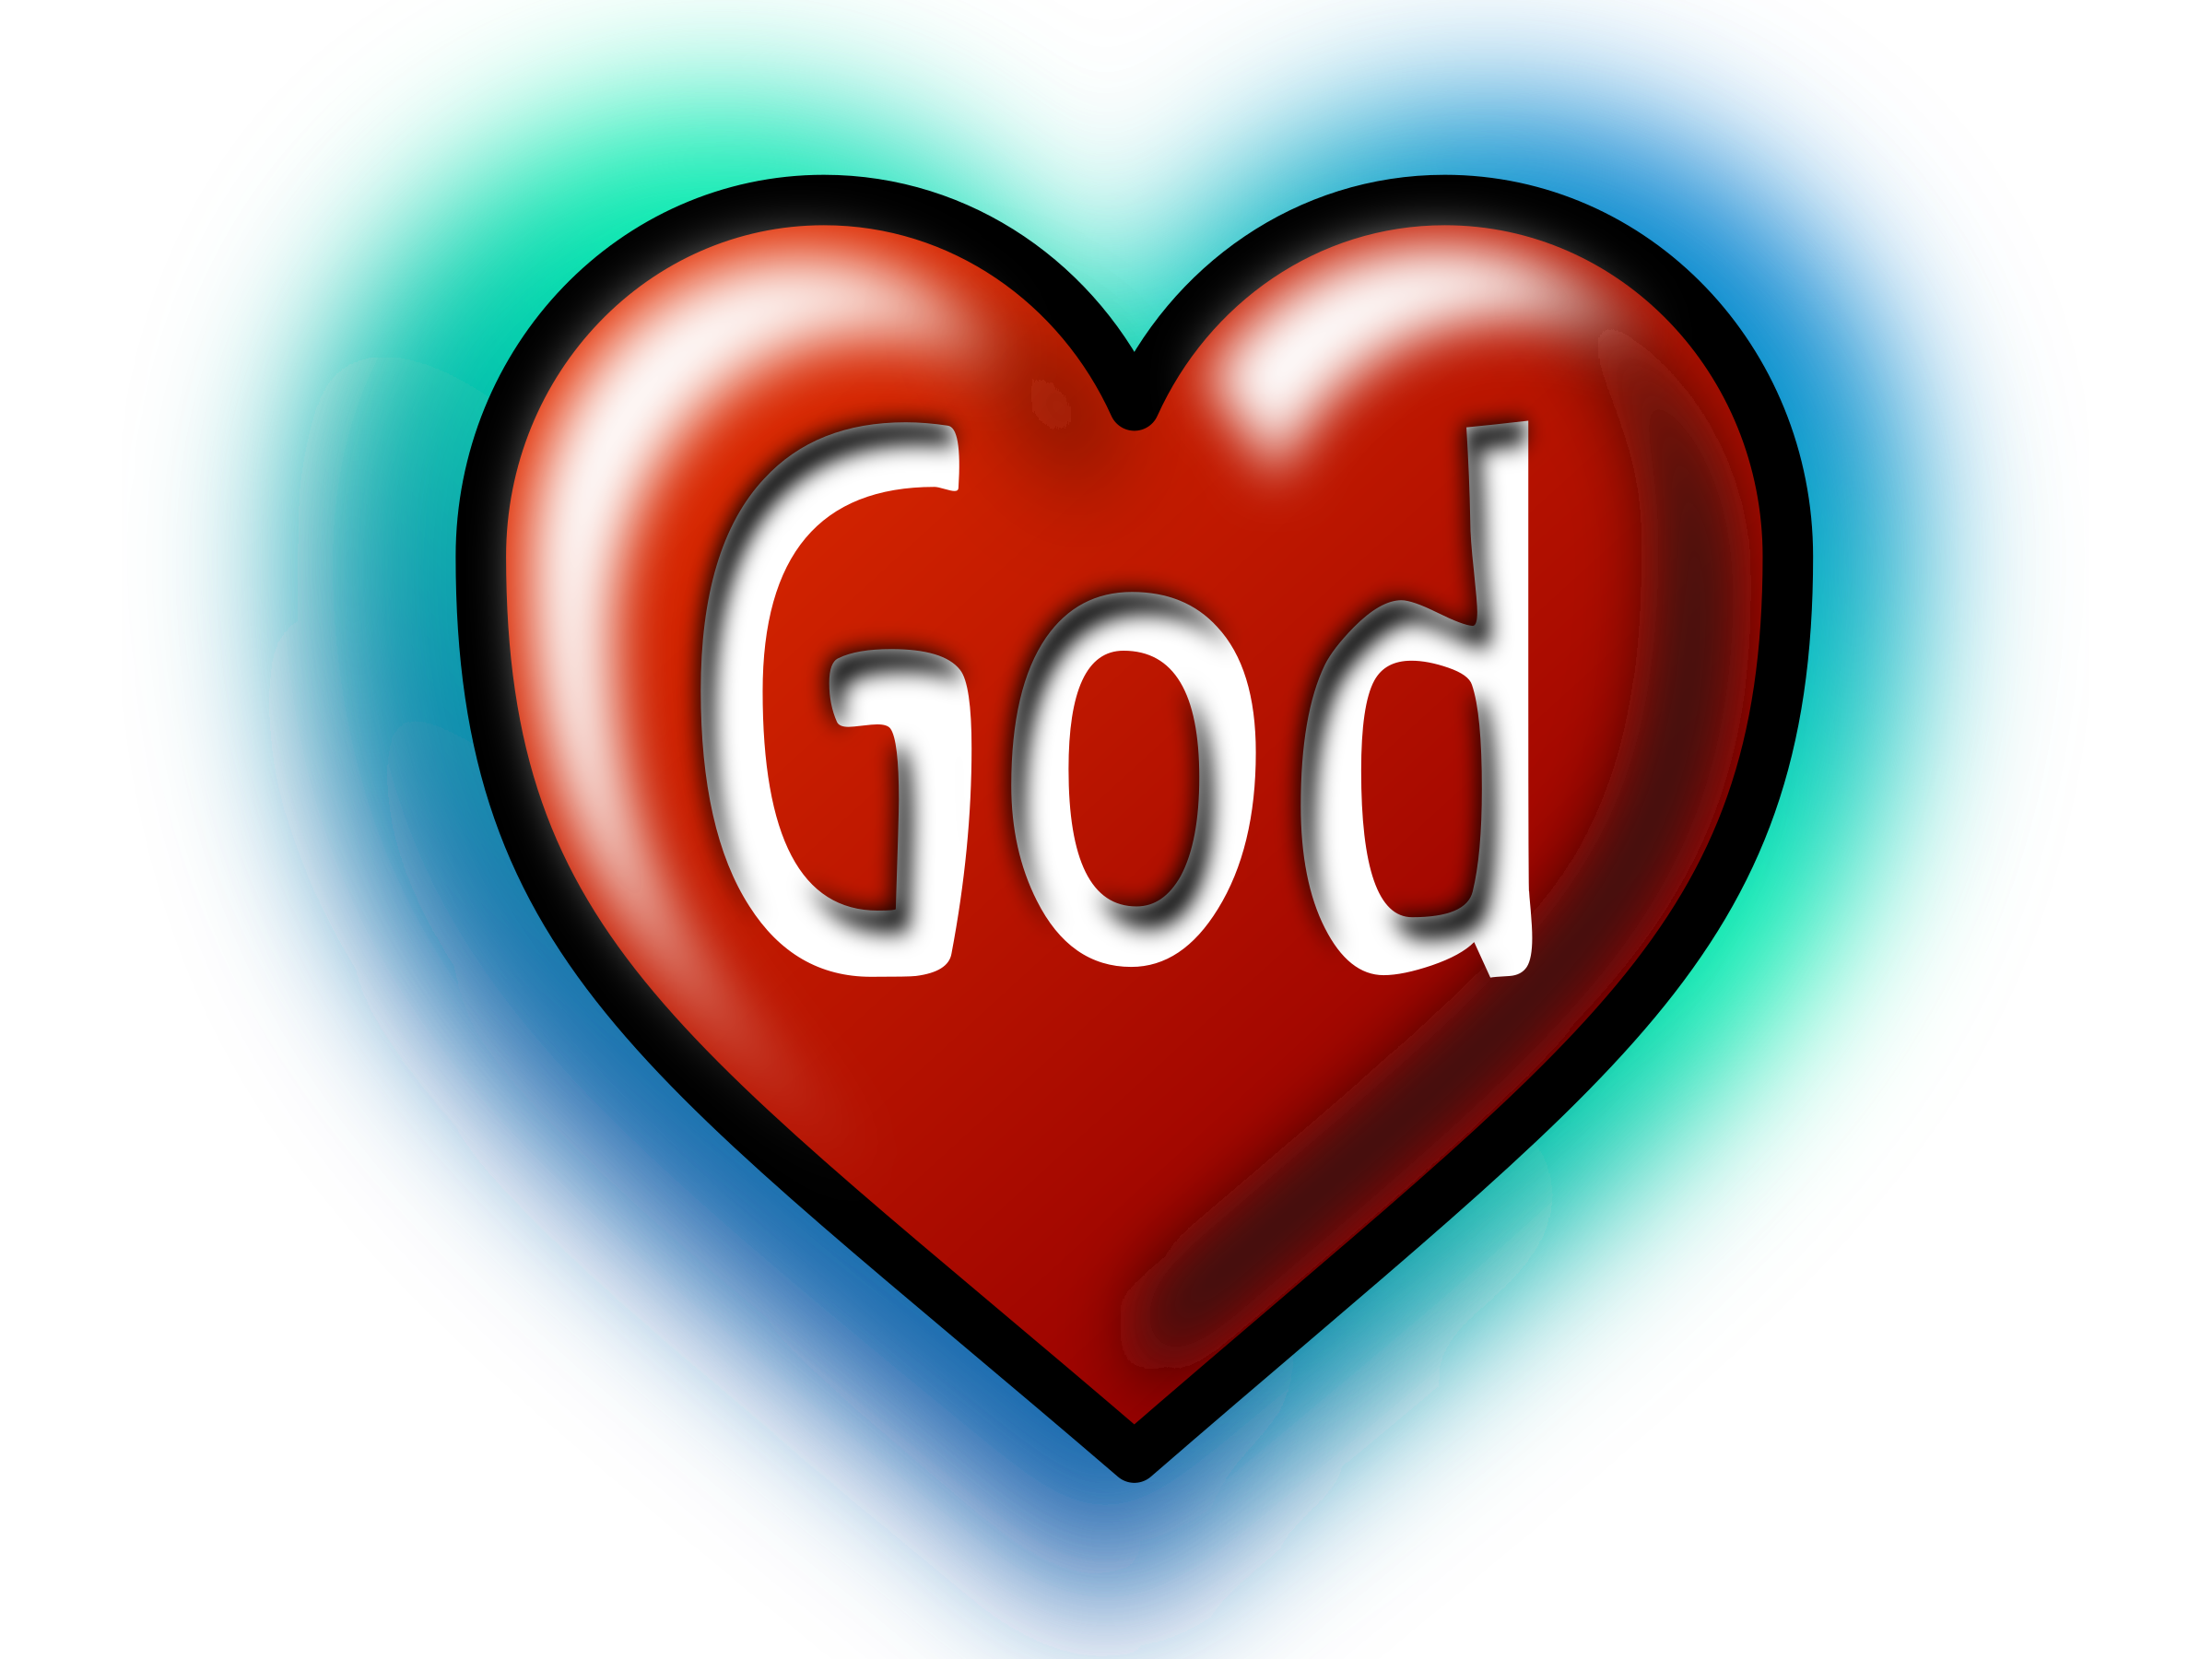 God Heart (Text converted to image|path) by rygle